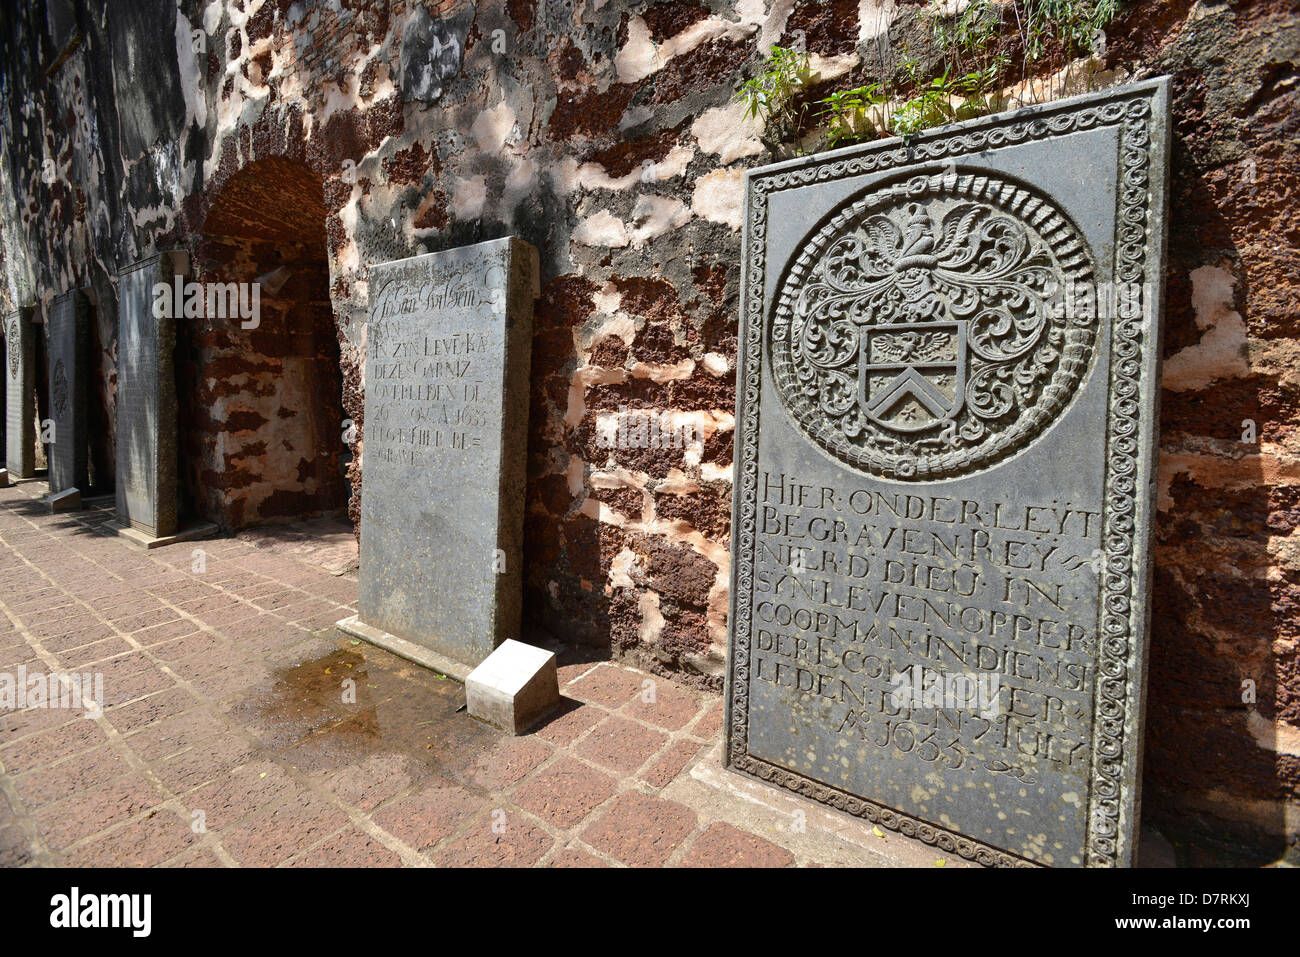 Asia Malaysia Malacca Dutch tombstones in the courtyard of St Paul's Church - Stock Image